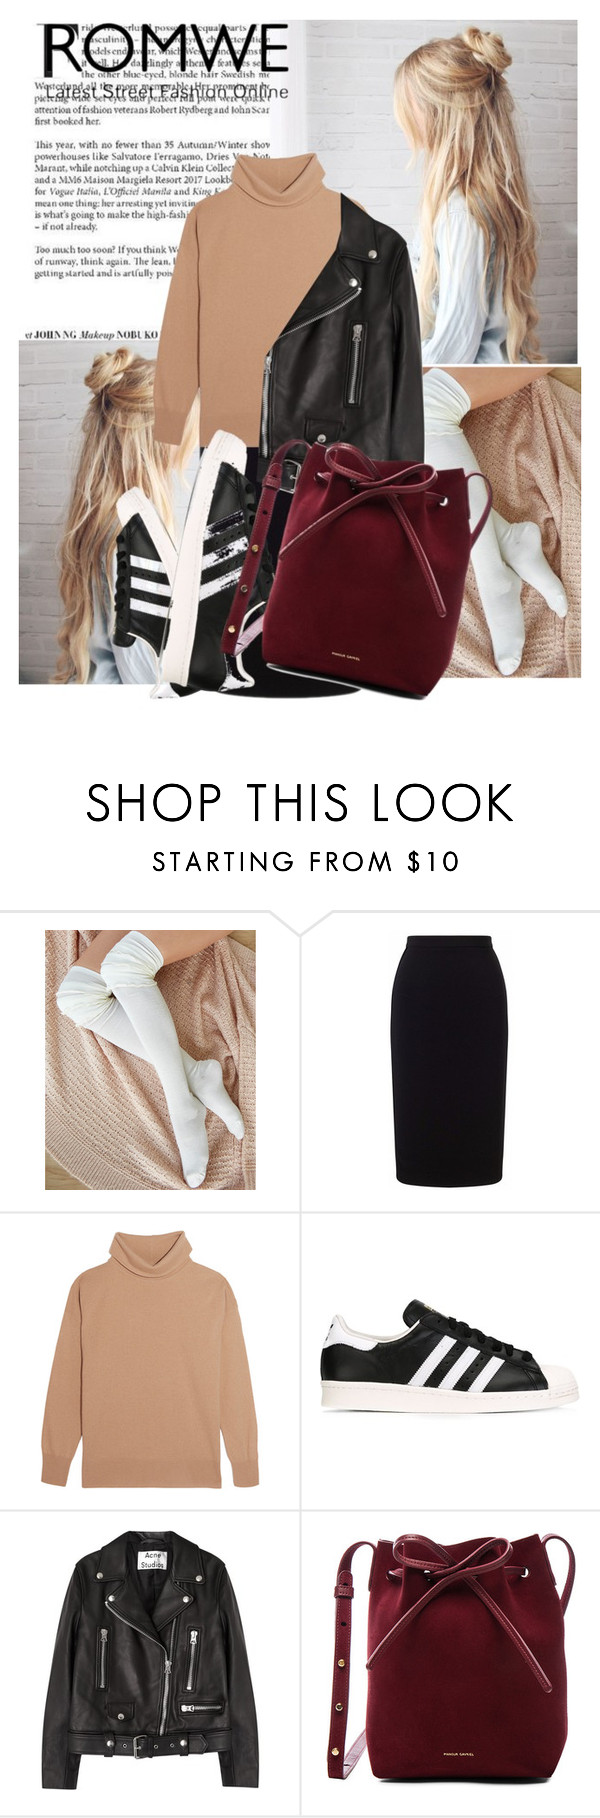 """""""Maroon"""" by taraditha ❤ liked on Polyvore featuring Wet Seal, Roland Mouret, Iris & Ink, adidas Originals, Acne Studios and Mansur Gavriel"""